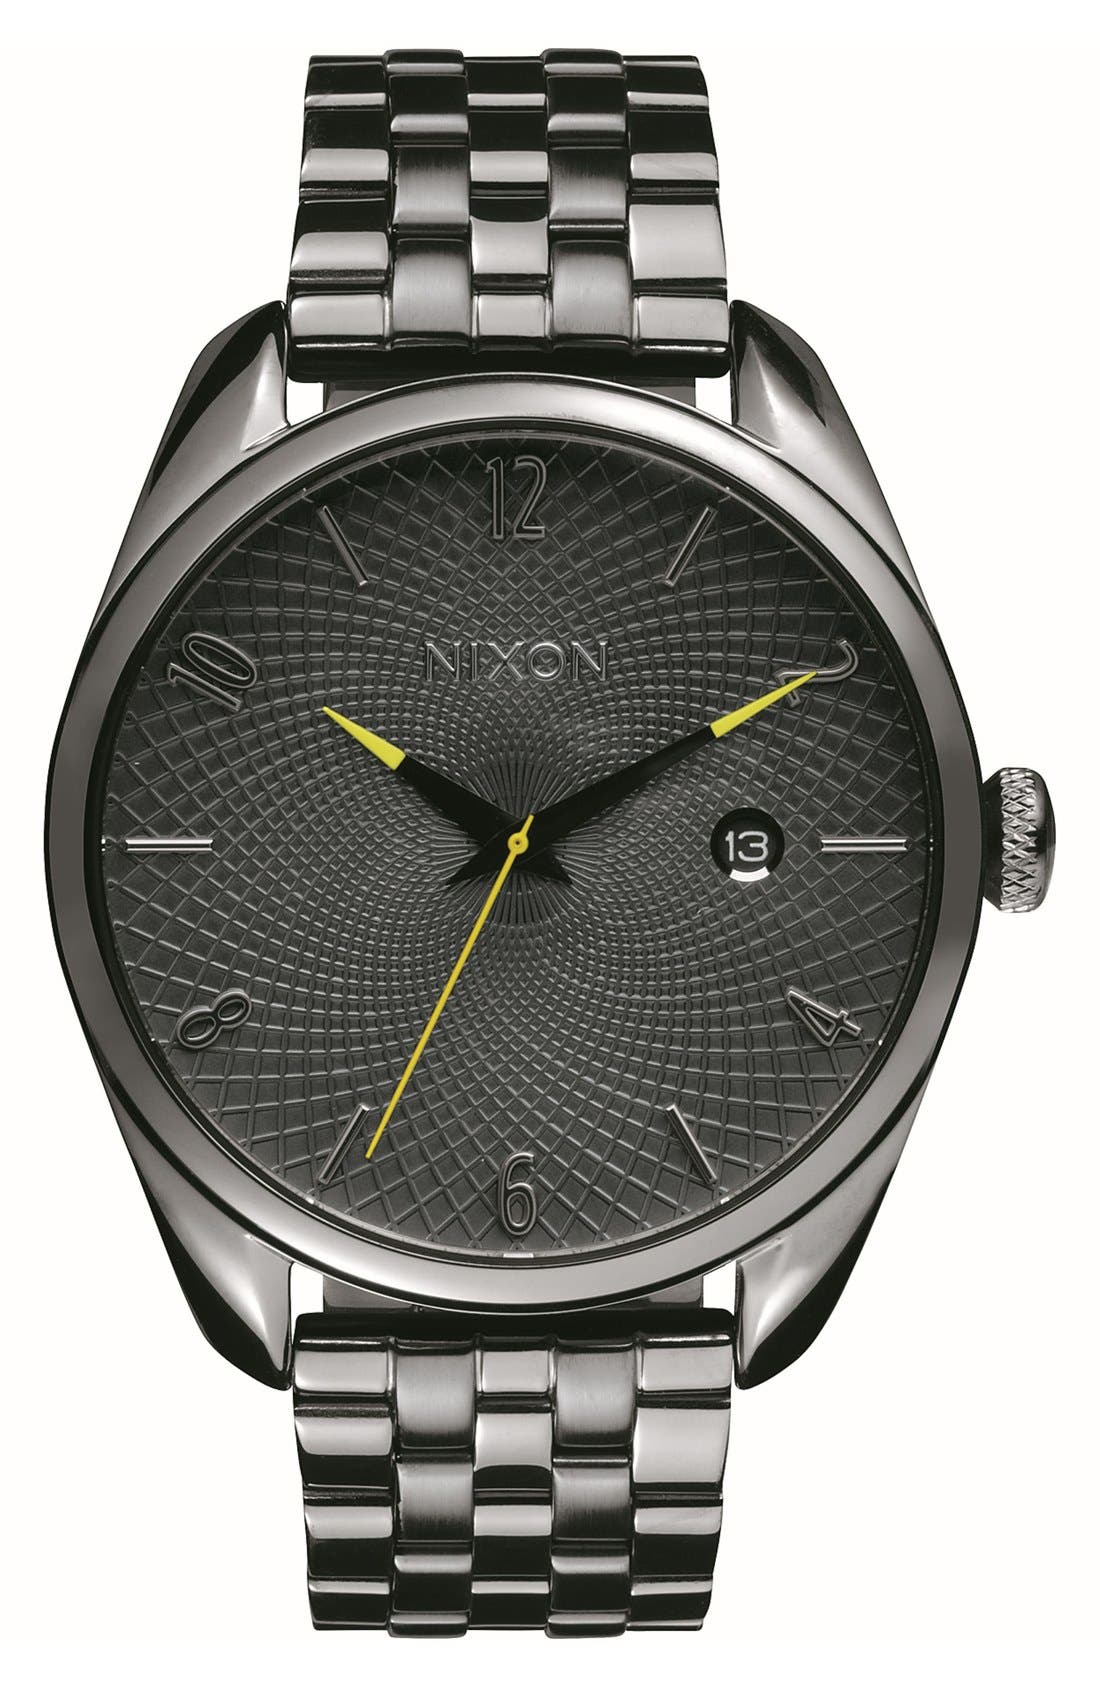 Alternate Image 1 Selected - Nixon 'Bullet' Guilloche Dial Bracelet Watch, 38mm